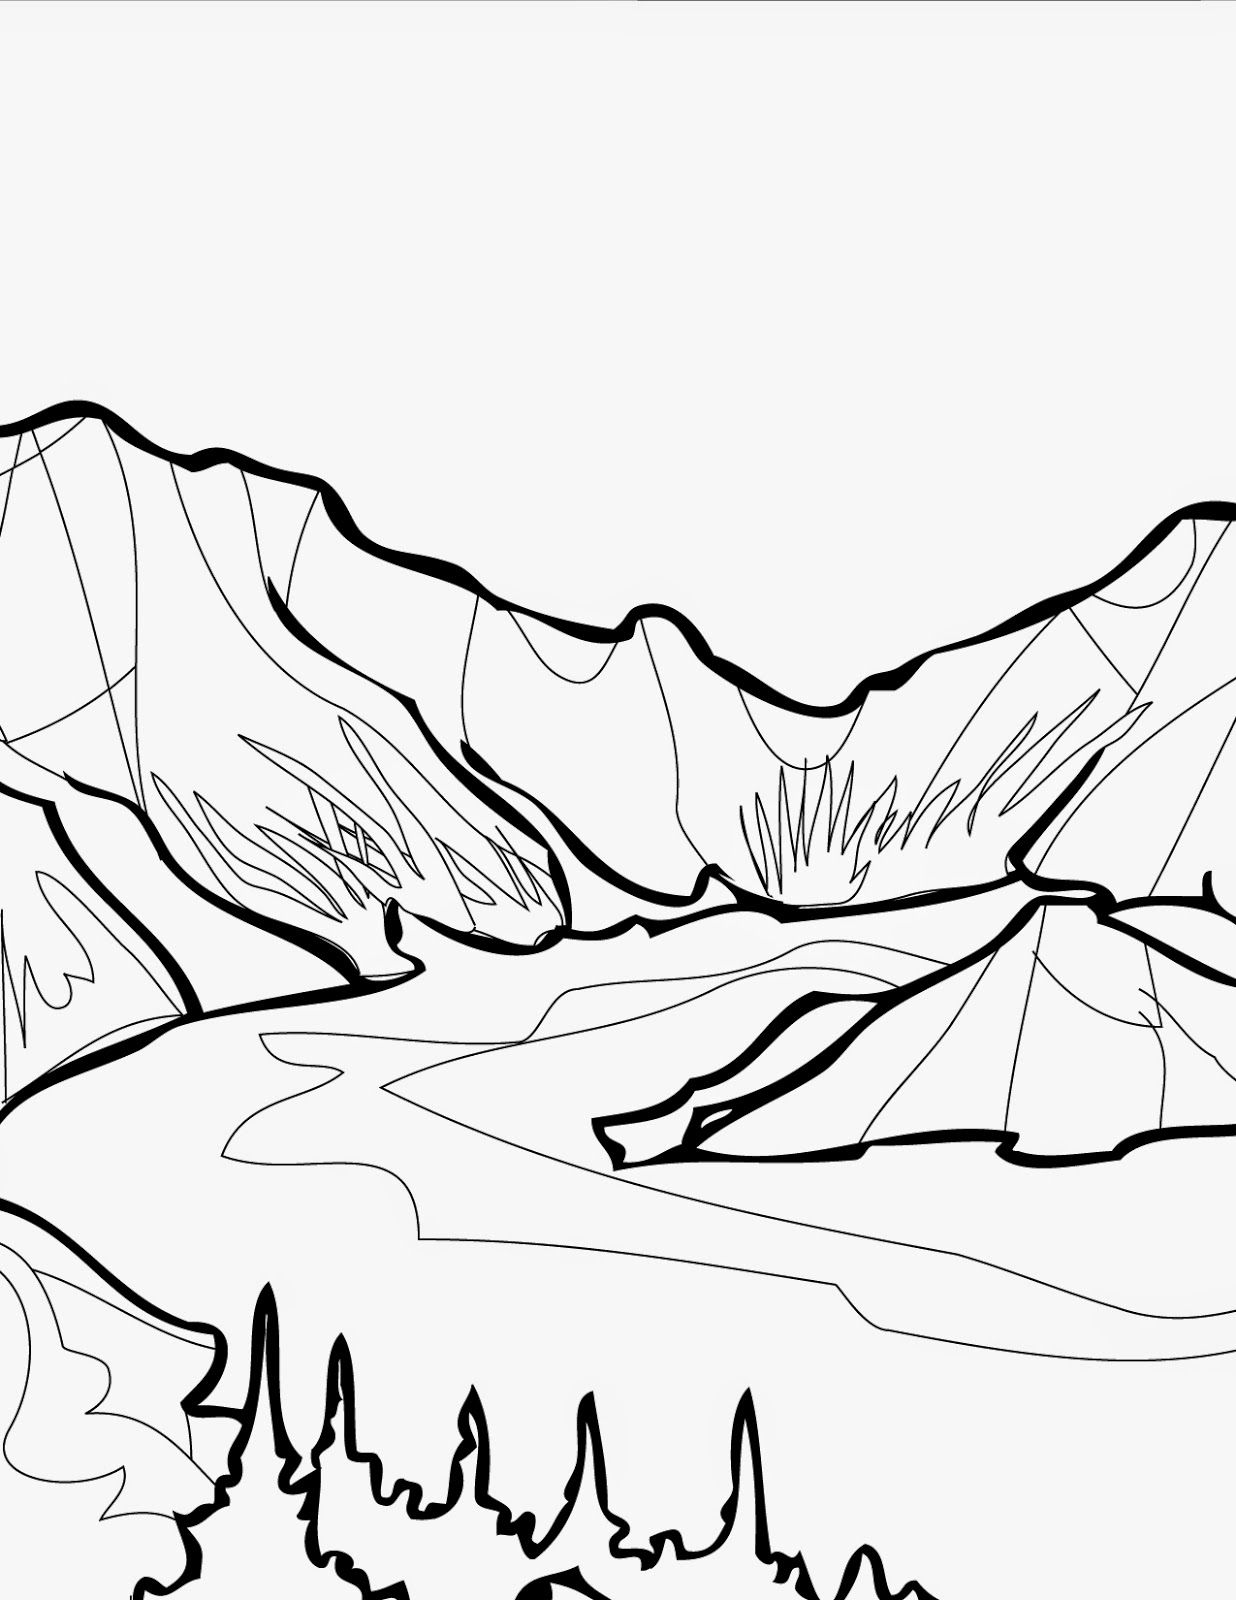 Free Coloring Pages National Parks Google Search Coloring